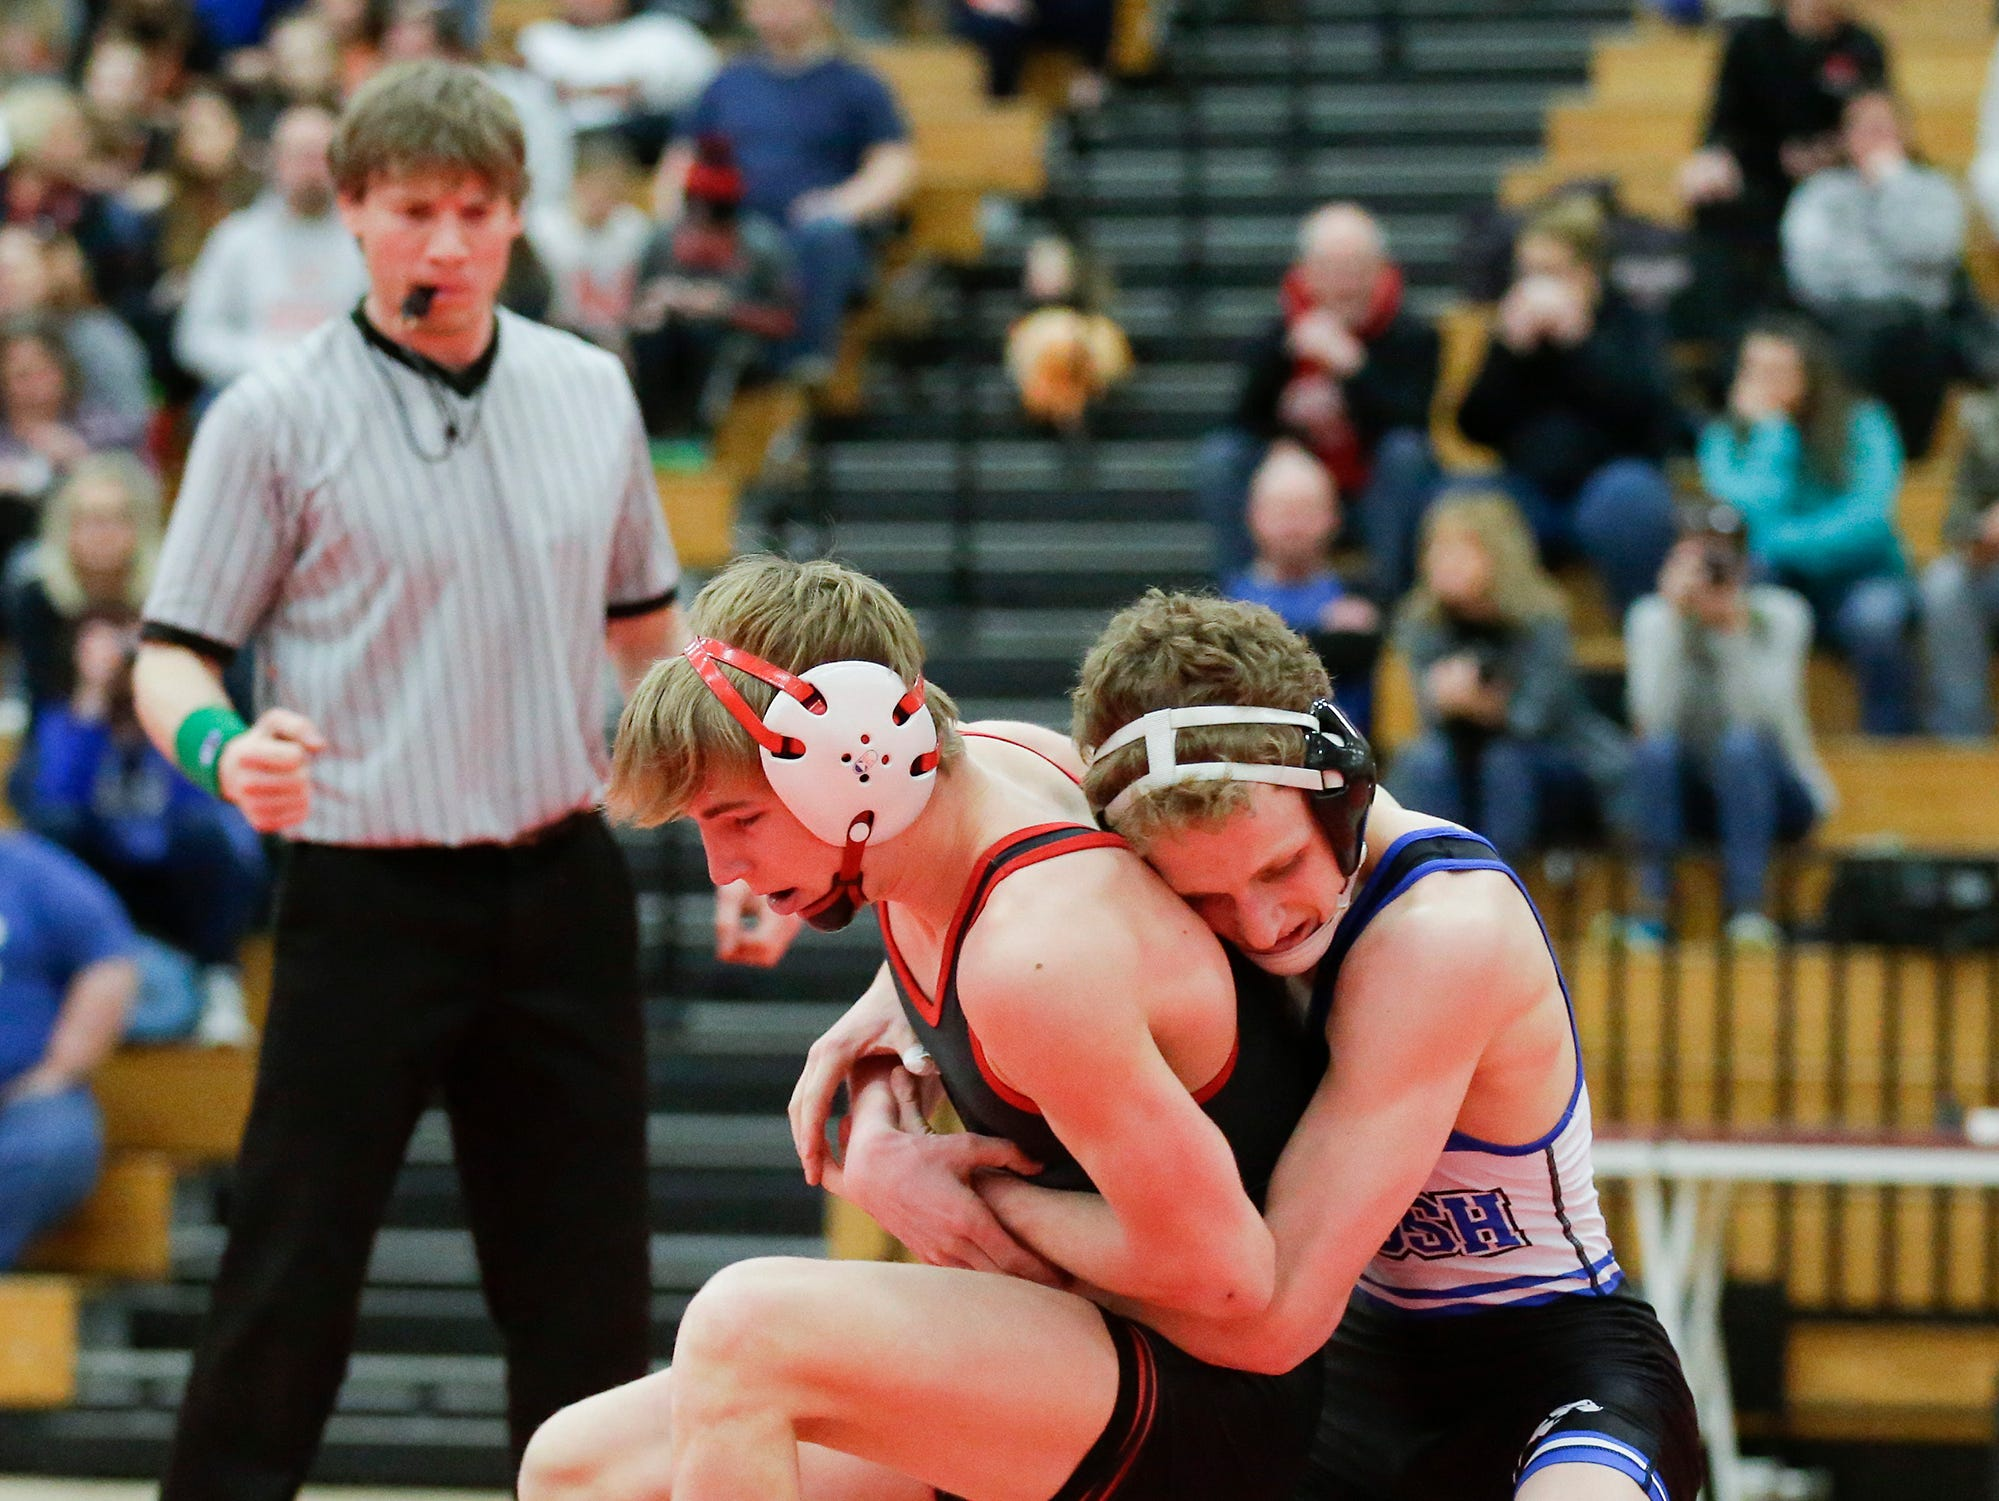 Kimberly High School's Max Sanderfoot wrestles Oshkosh West High School's Logan Grota in a 132-pound match during the Fox Valley Association wrestling championship meet held in Fond du Lac, Saturday, Feb. 2, 2019. Sanderfoot won the match by a pin.